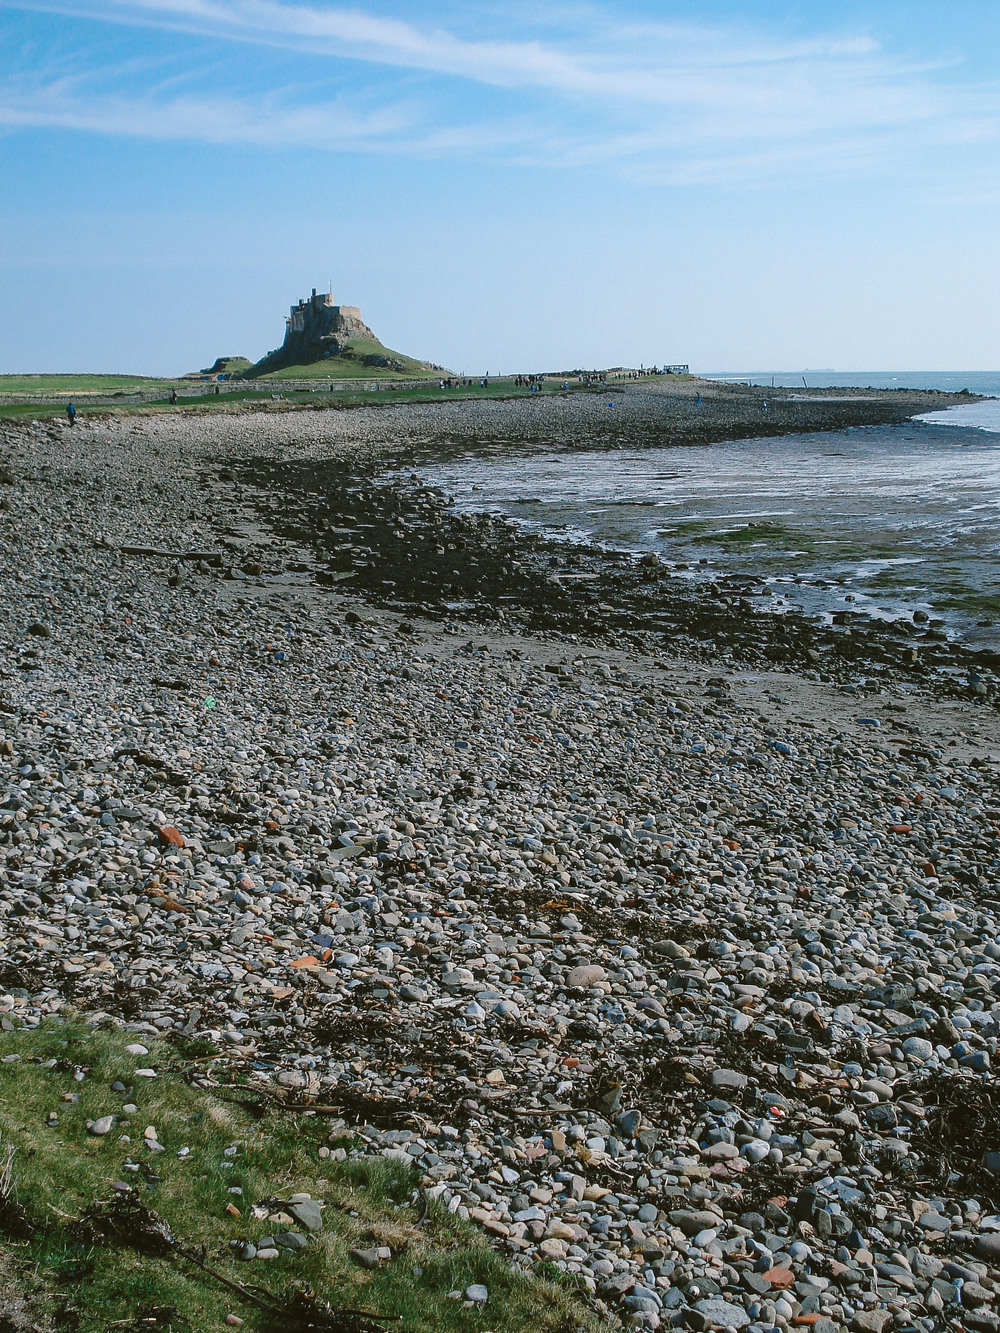 The classic view of Lindisfarne Castle from the beach